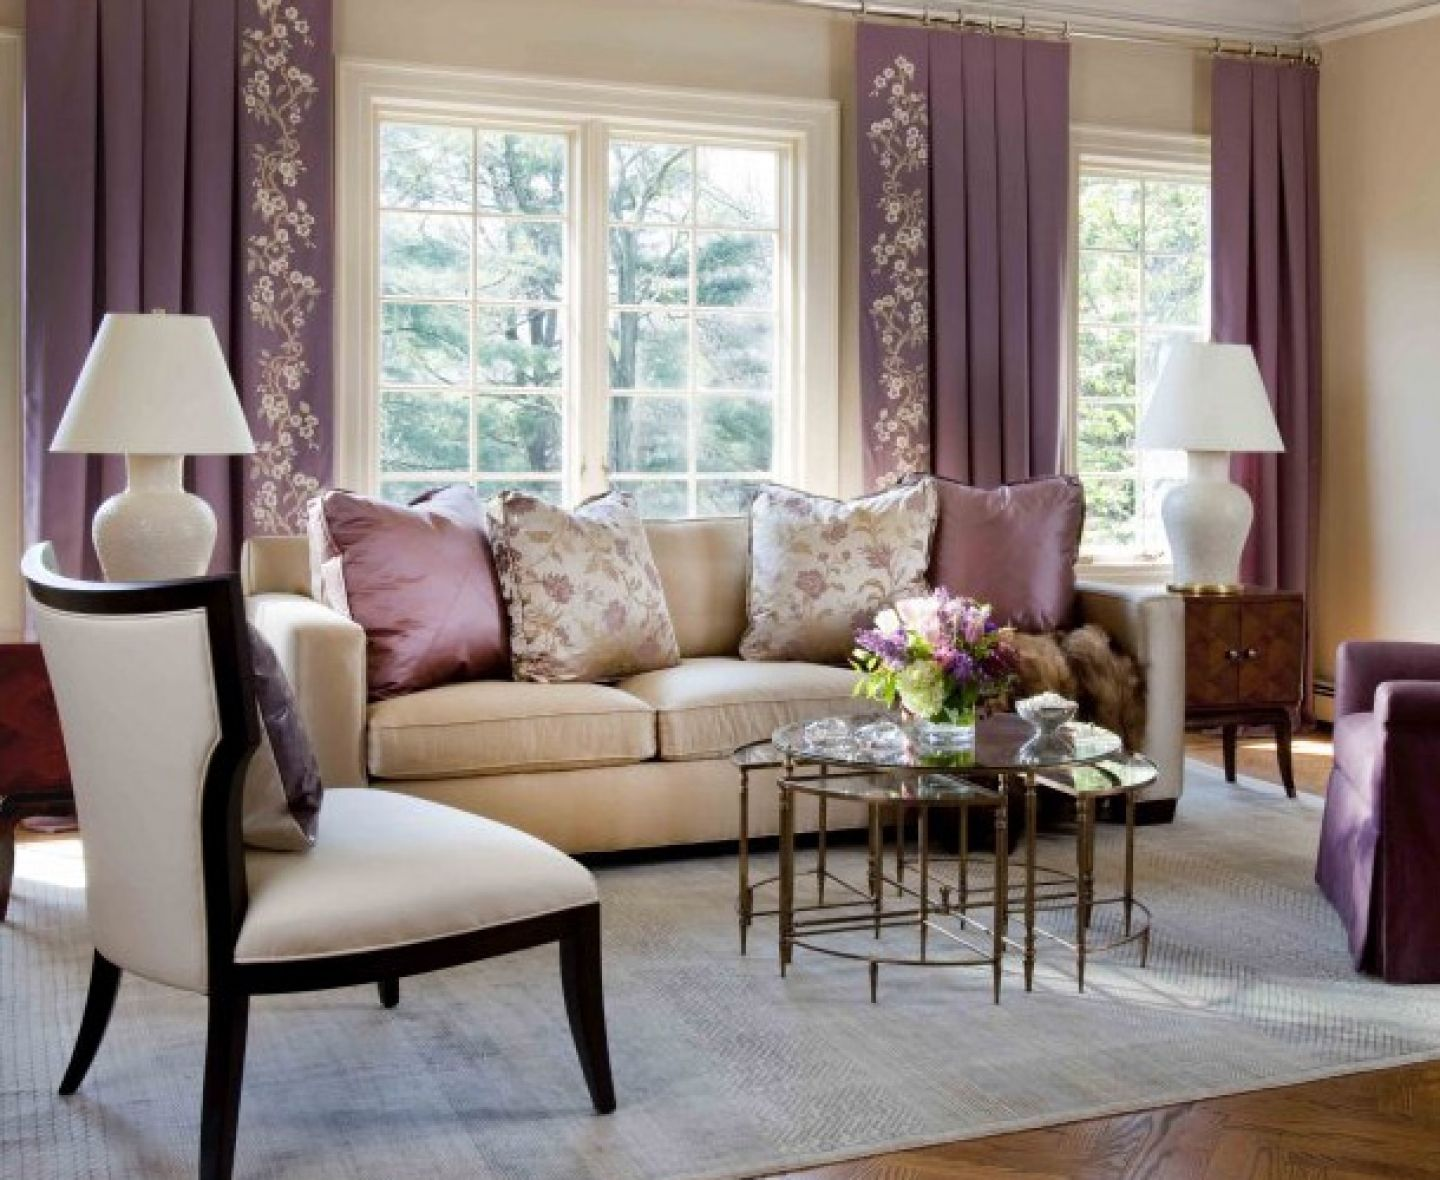 Vintage house interior living room - Extraordinary Living Room Designs In Vintage Style Amusing Purple Vintage Living Room Decoration With Beige